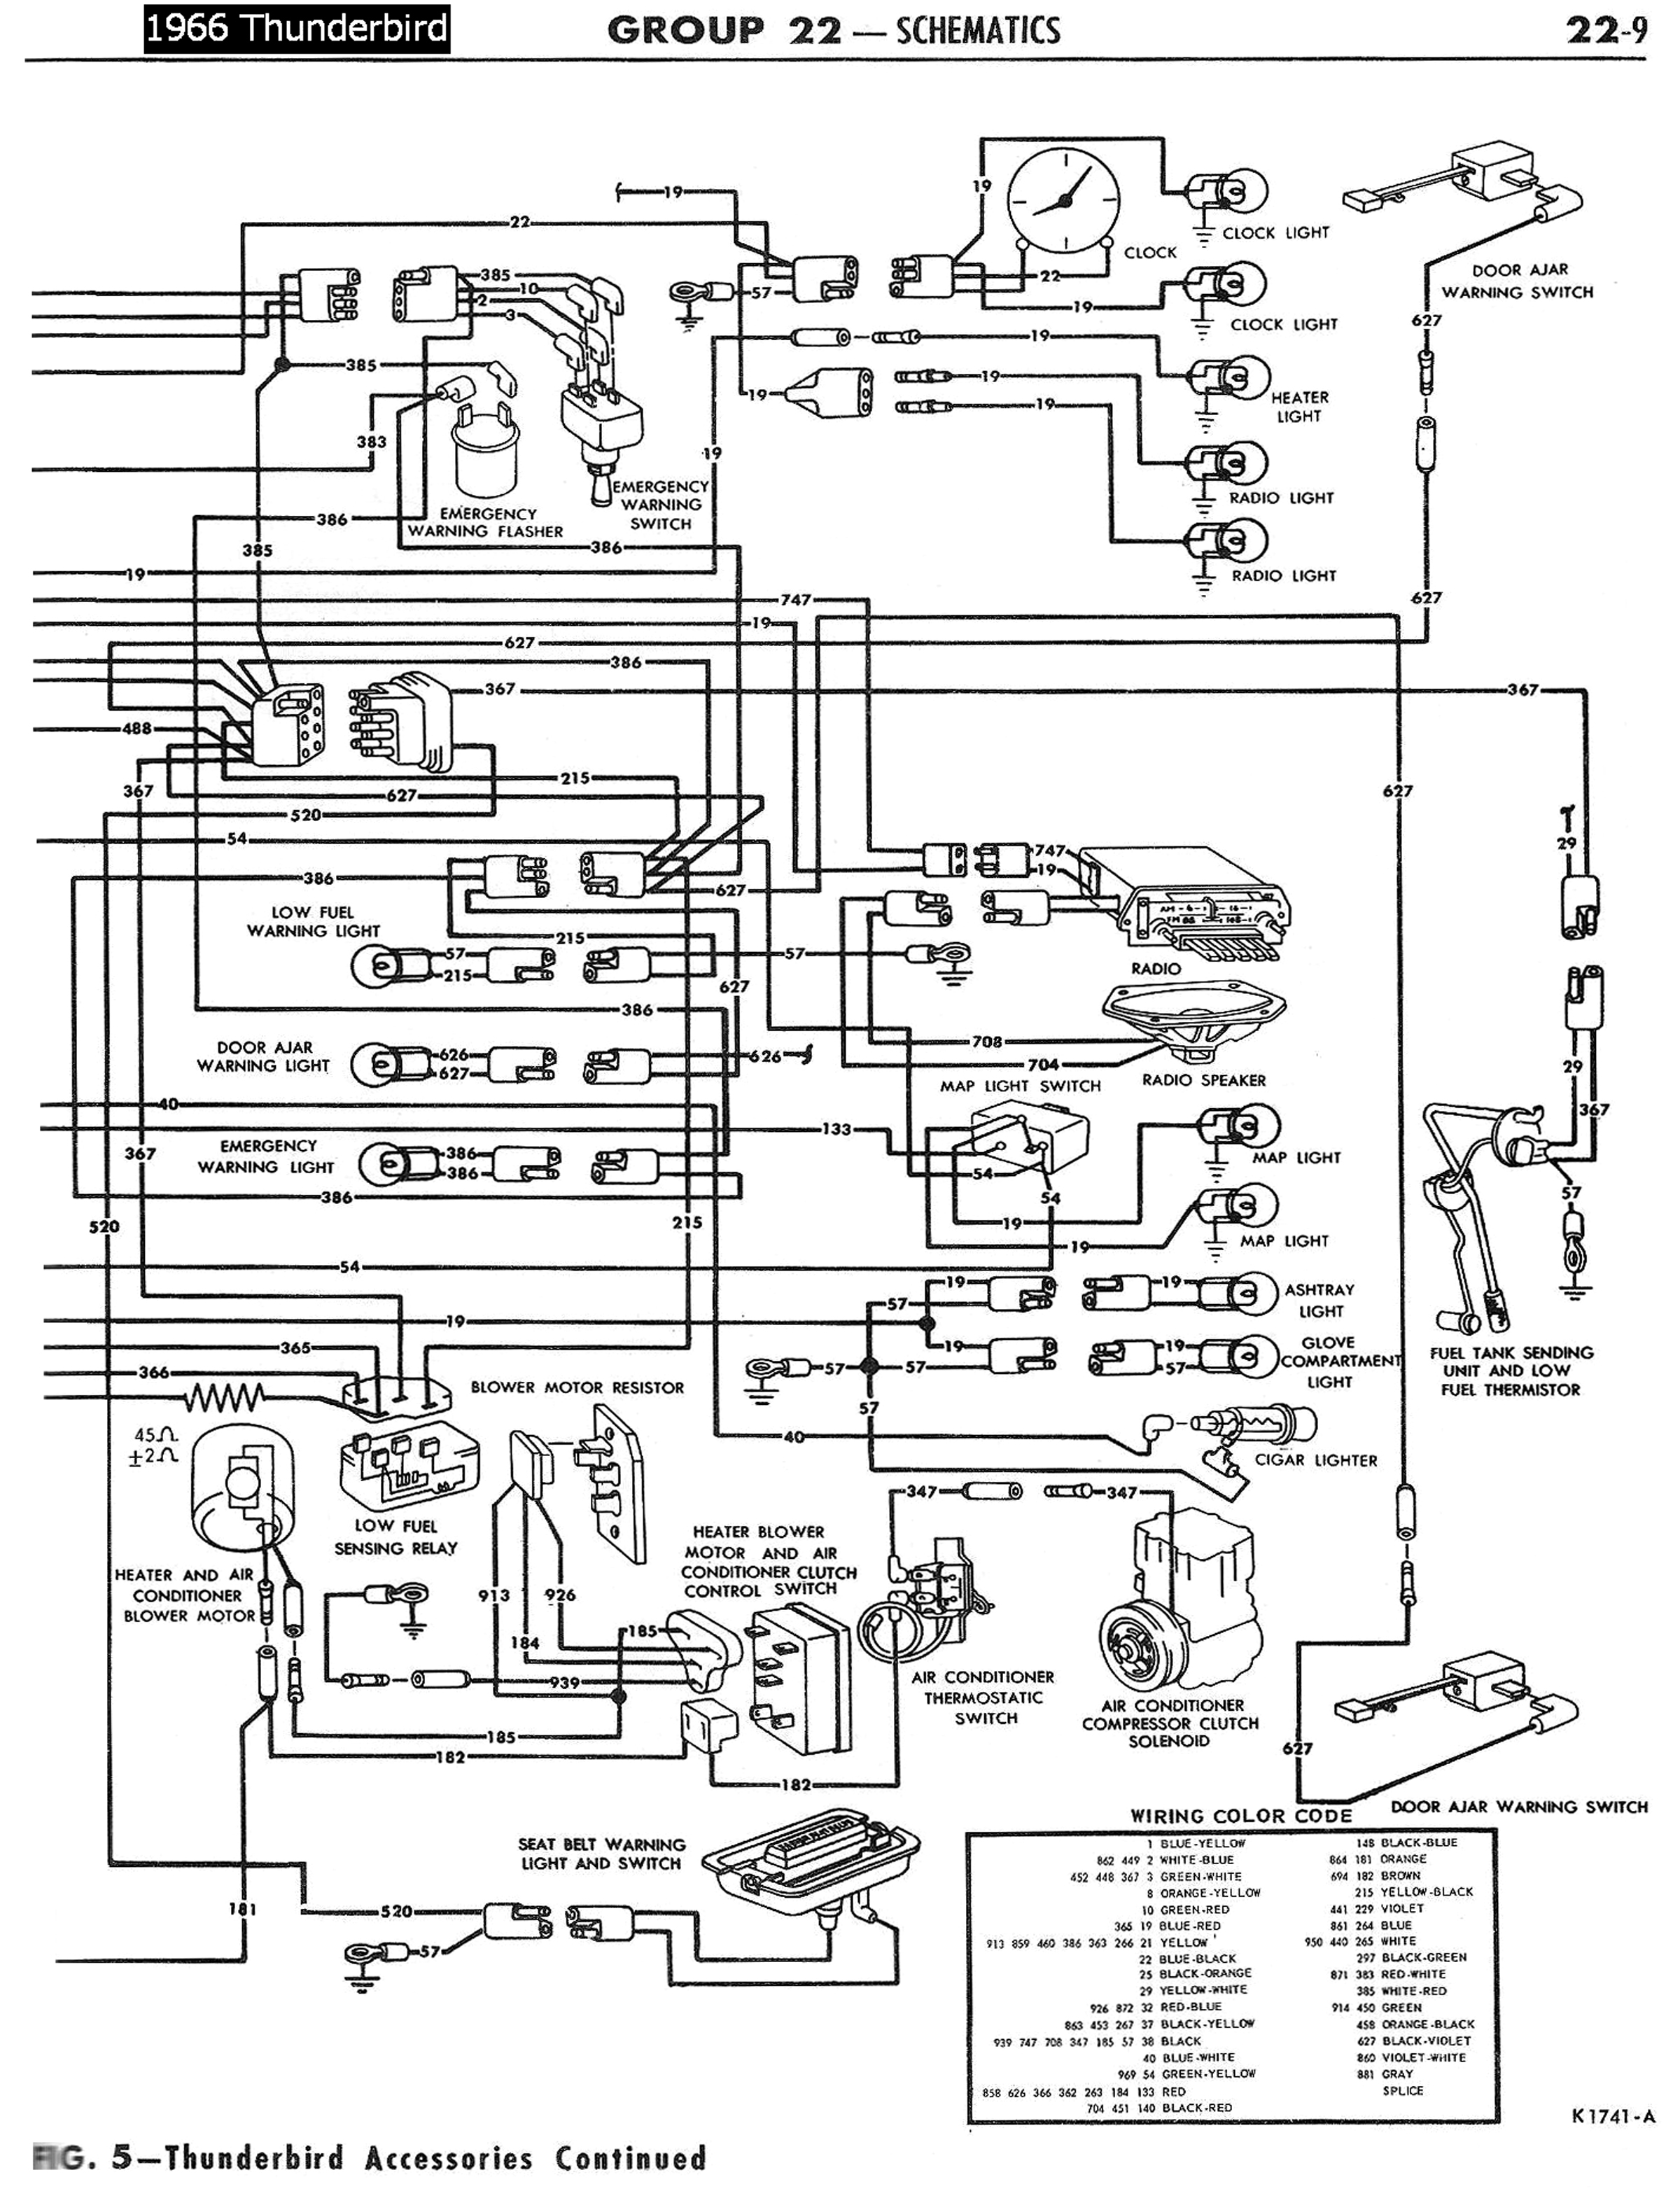 1958 68 ford electrical schematics 1987 ford thunderbird wiring diagram 1957 thunderbird power window wiring diagram #21